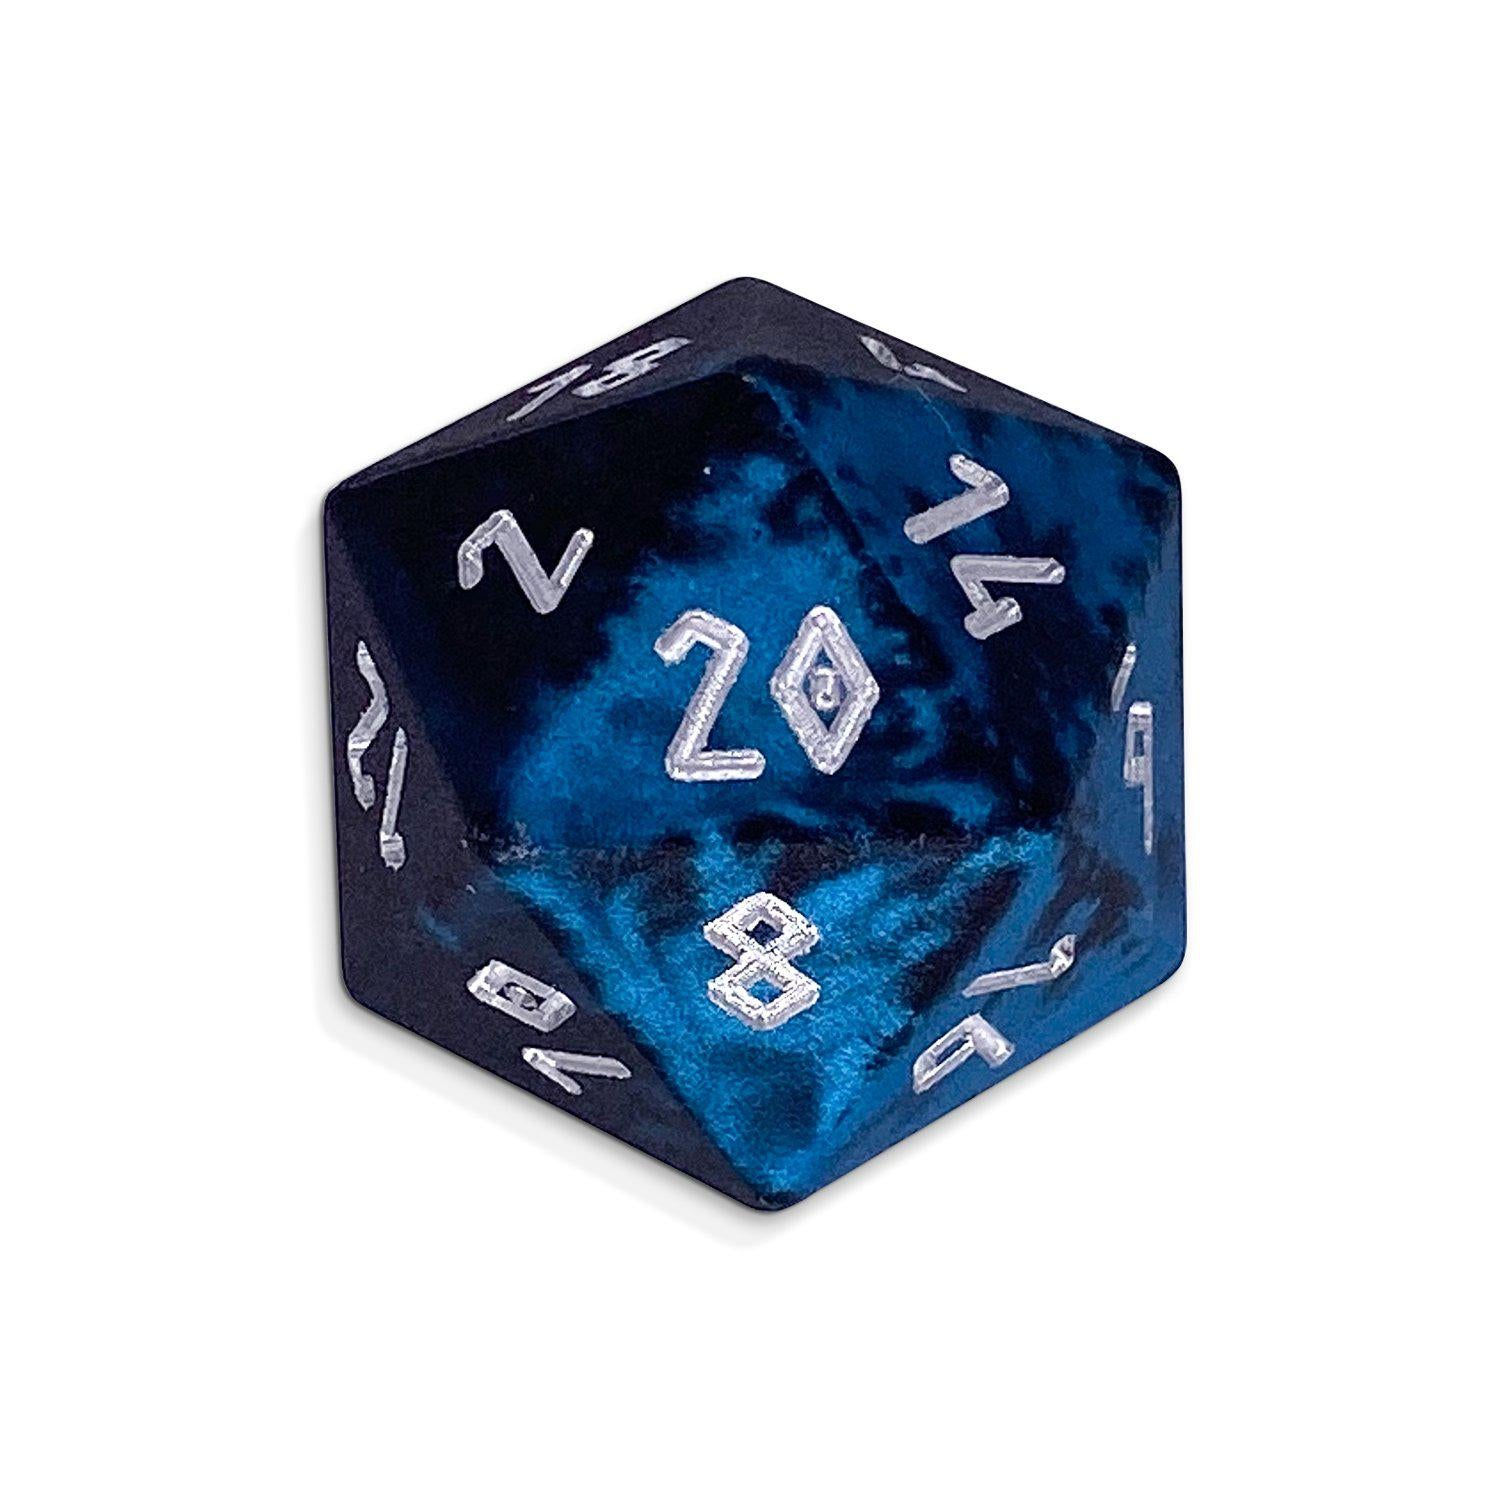 Single Wondrous Dice® D20 in Willow of the Wisp by Norse Foundry® 6063 Aircraft Grade Aluminum